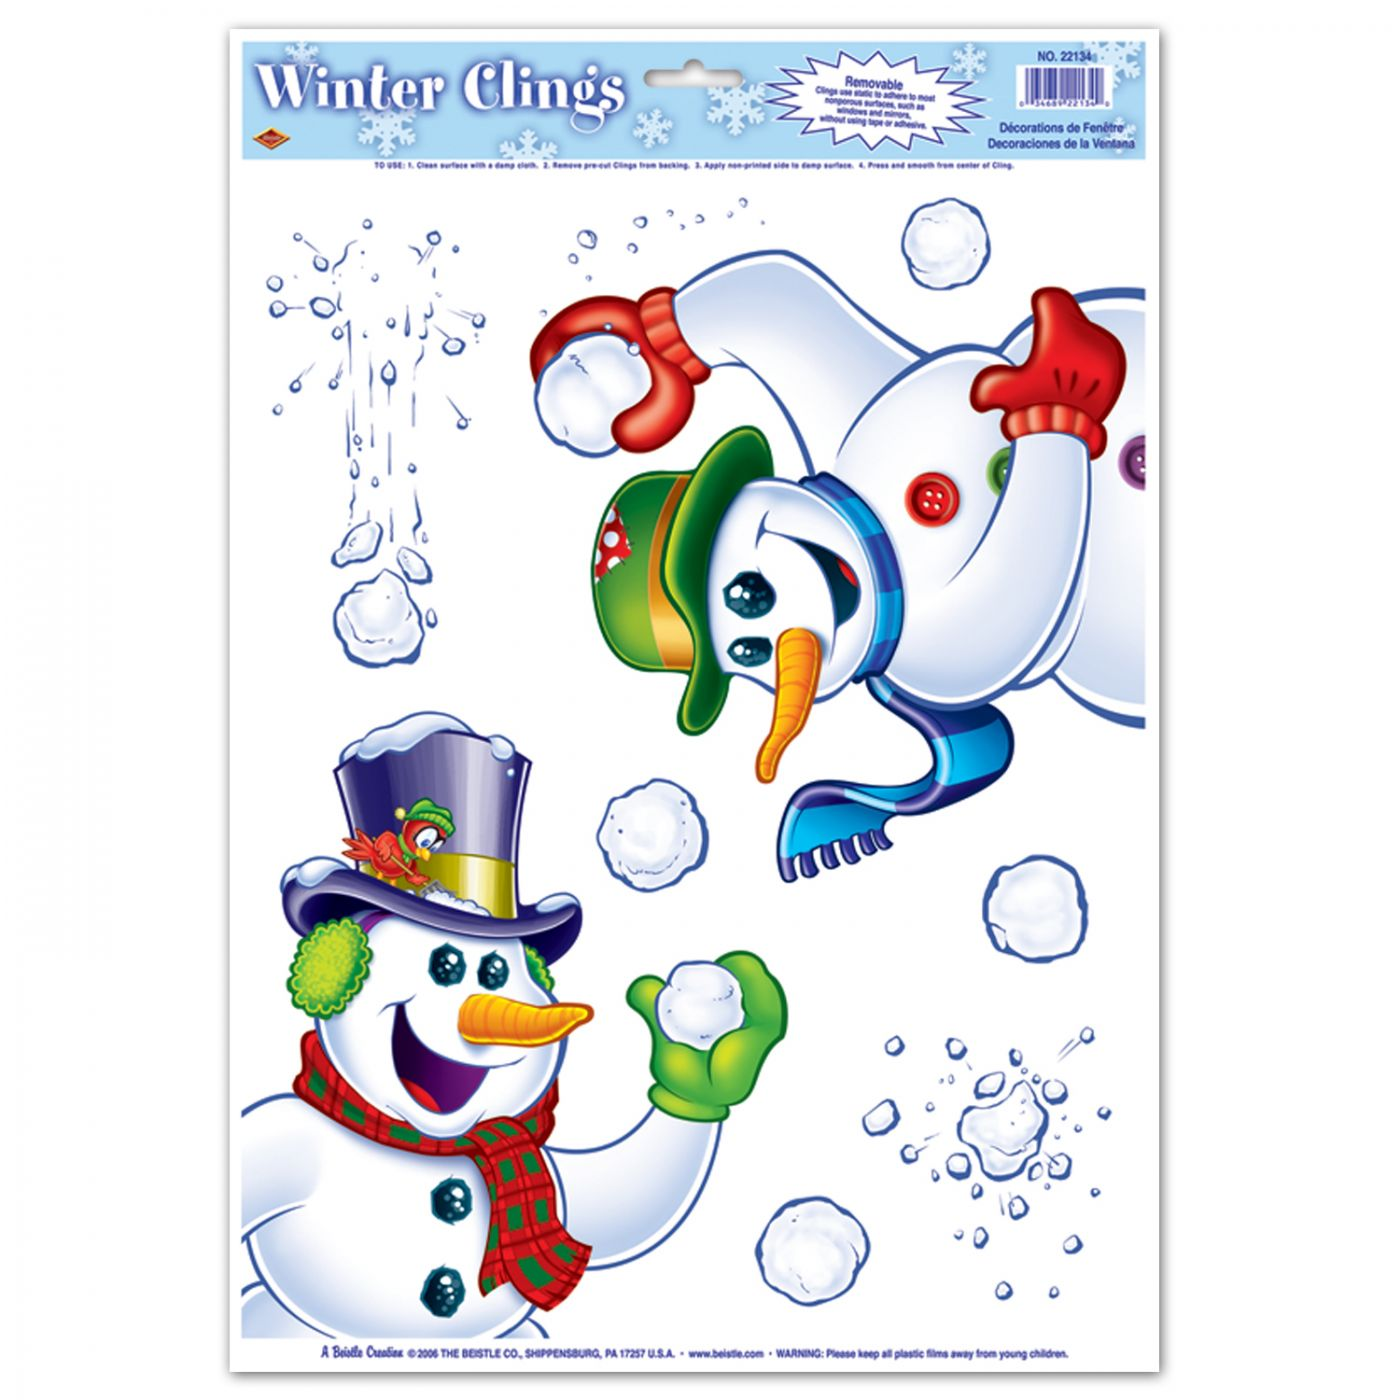 Snowman Clings image